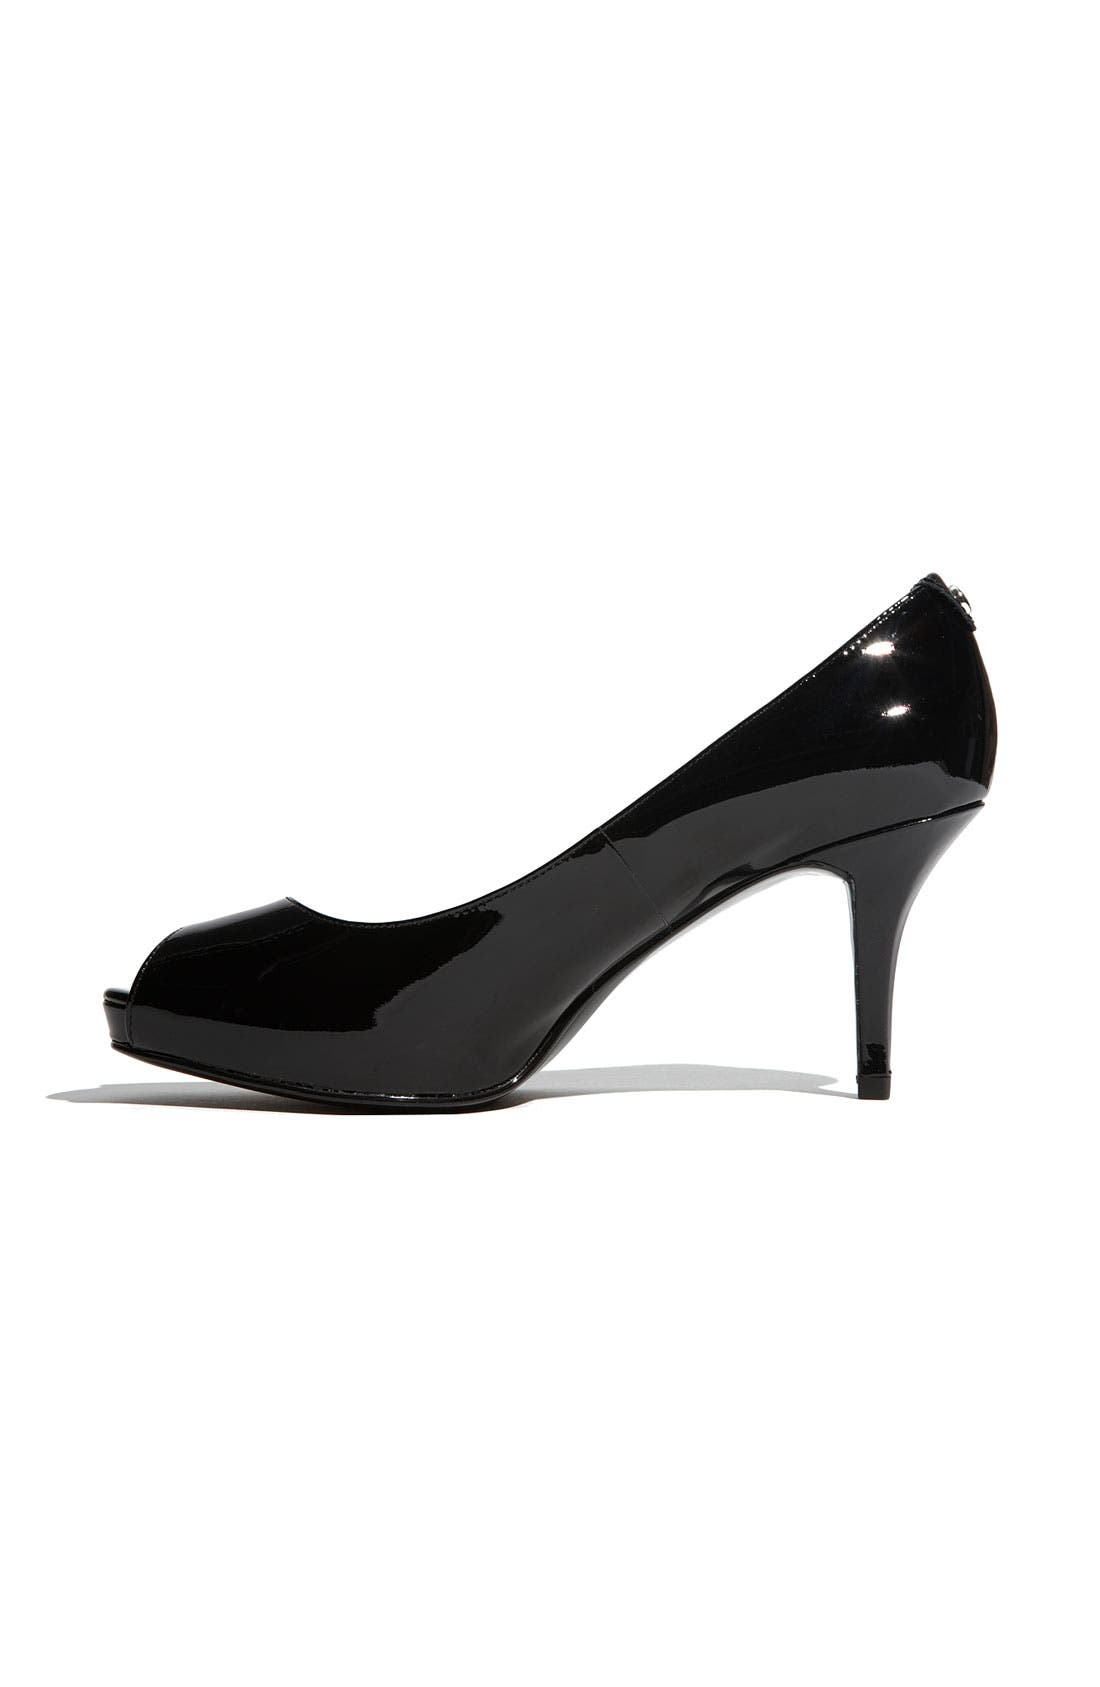 Alternate Image 2  - MICHAEL Michael Kors 'Flex' Peep Toe Pump